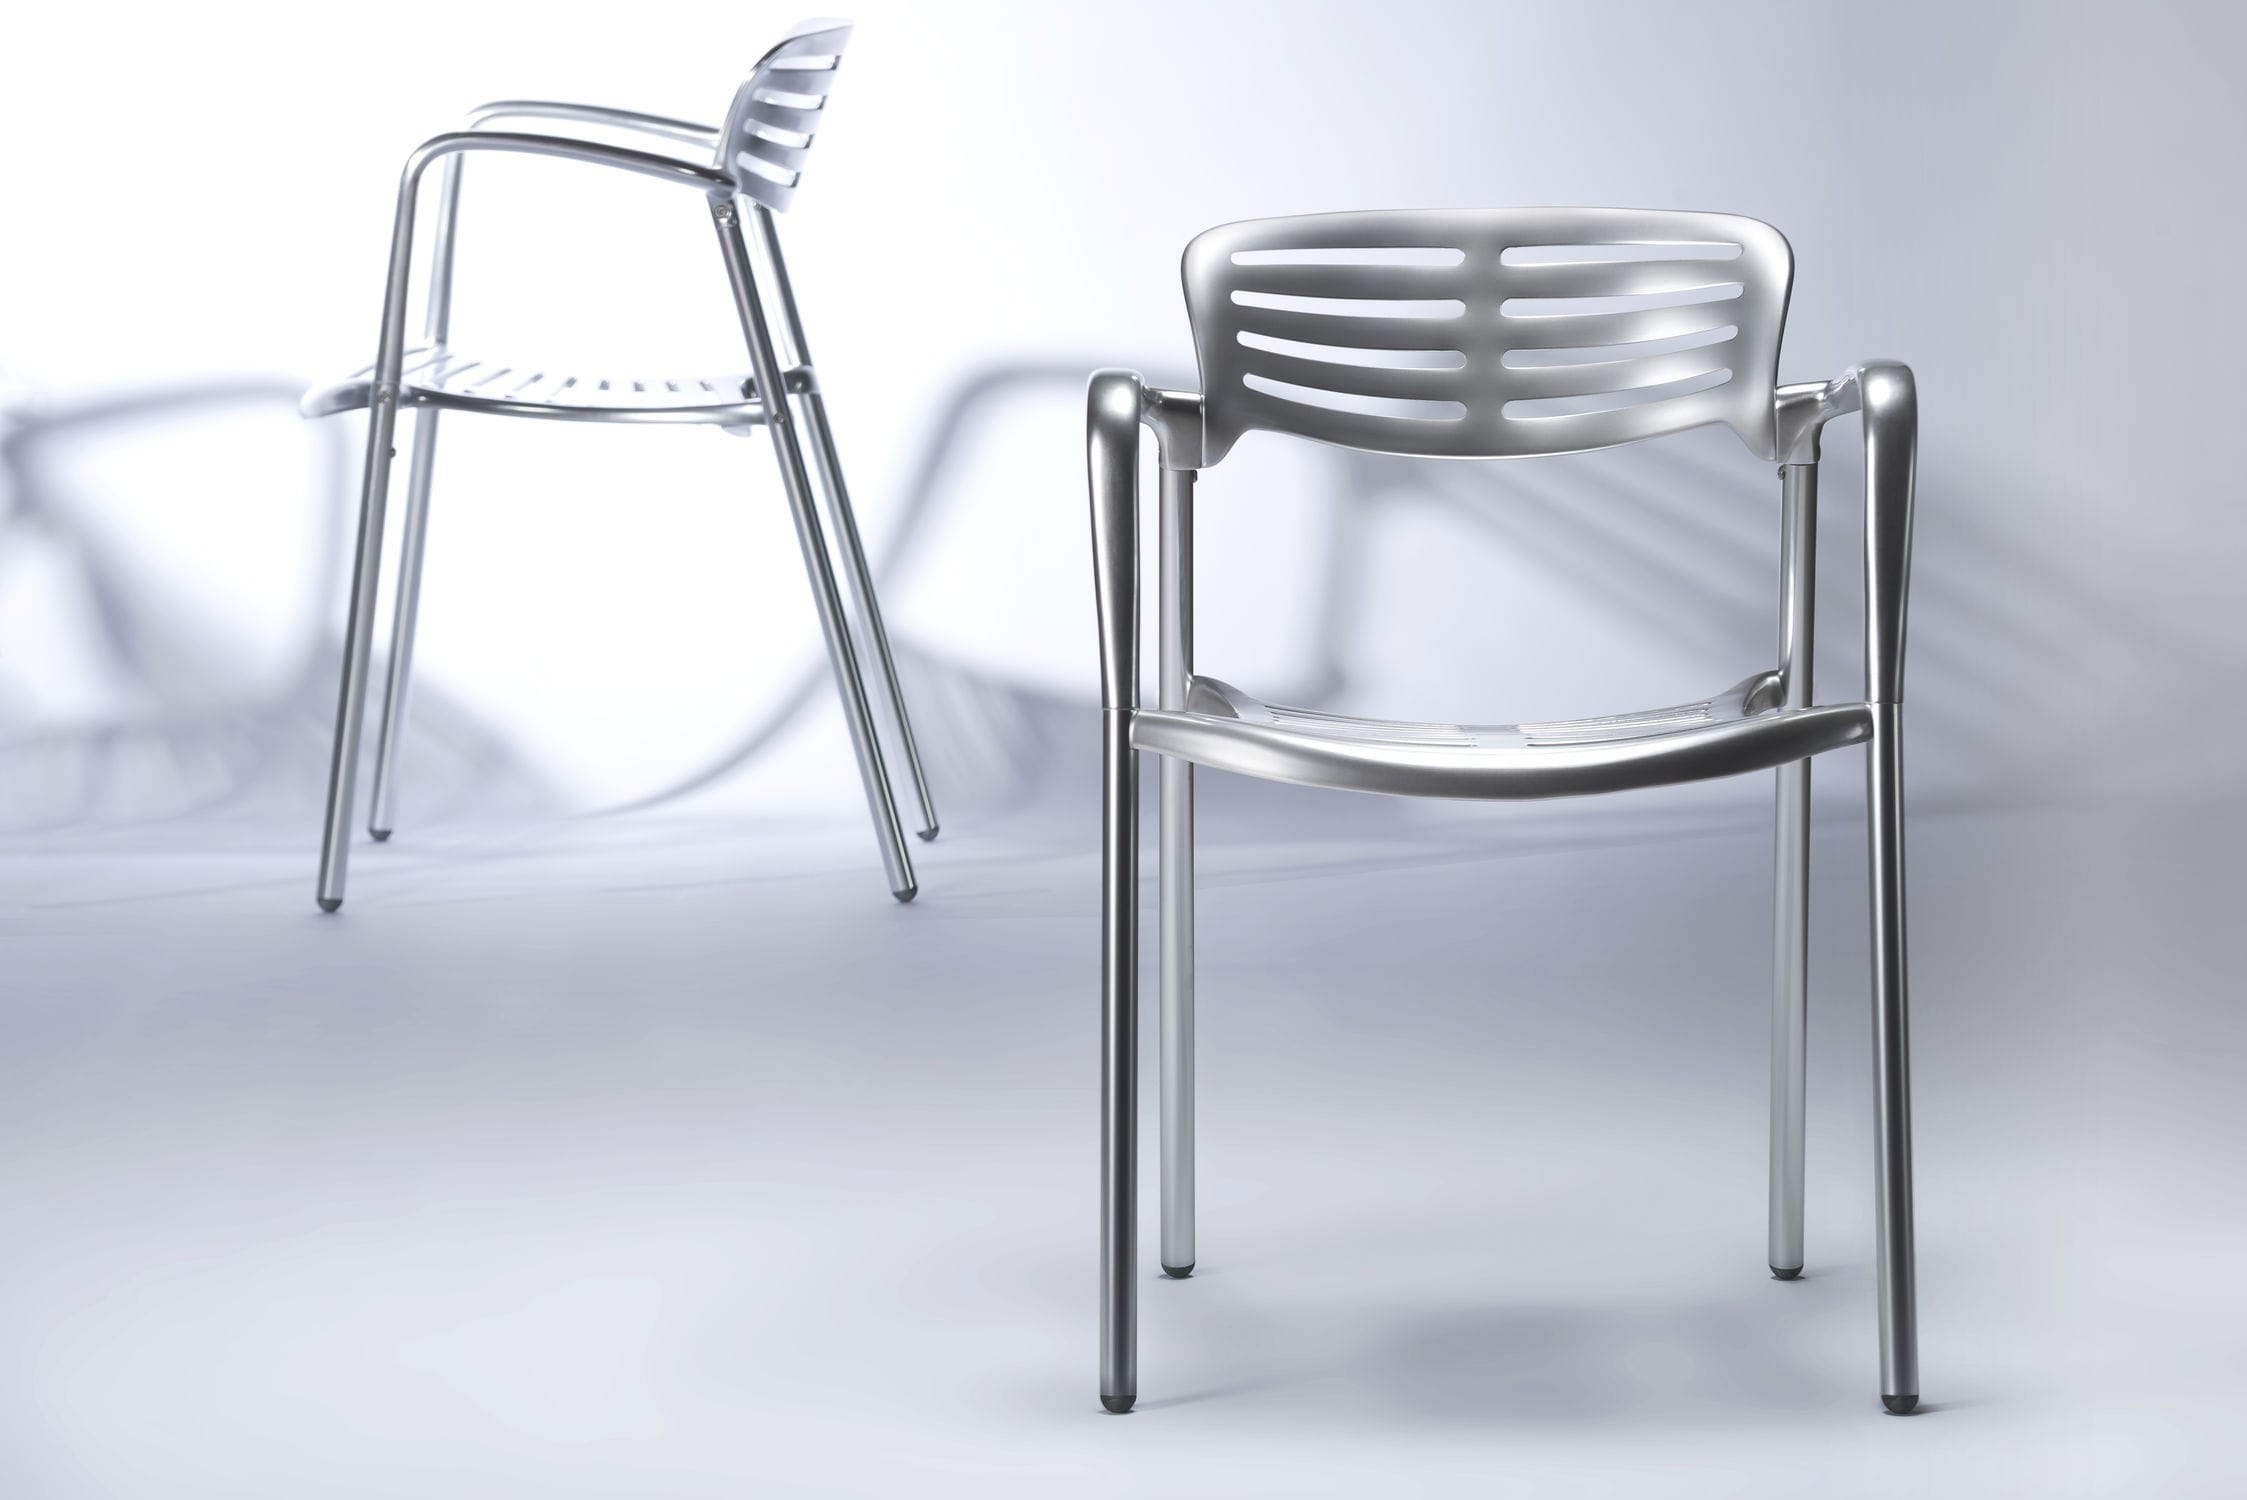 contemporary chair / with armrests / 100% recyclable / polished aluminum - TOLEDO by Jorge Pensi & Contemporary chair / with armrests / 100% recyclable / polished ...